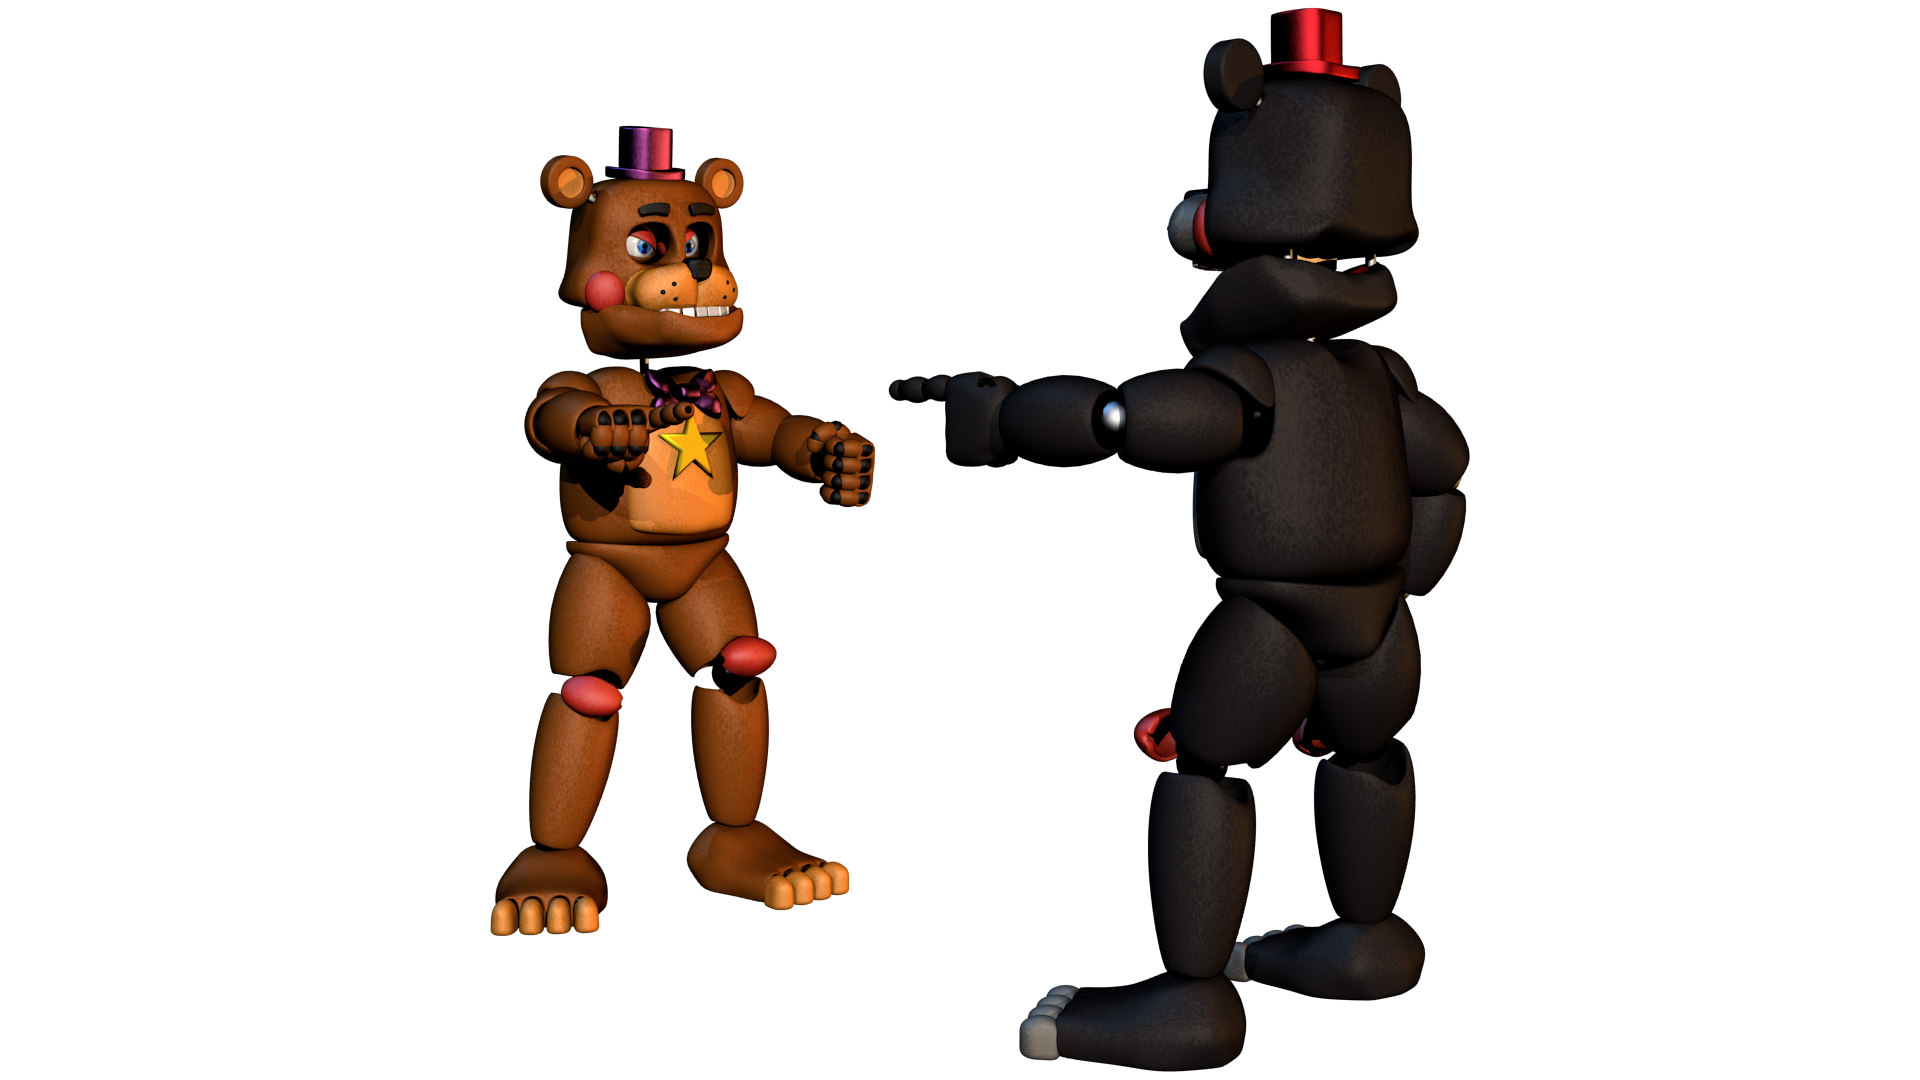 Rockstar drawing freddy. And lefty encounter each